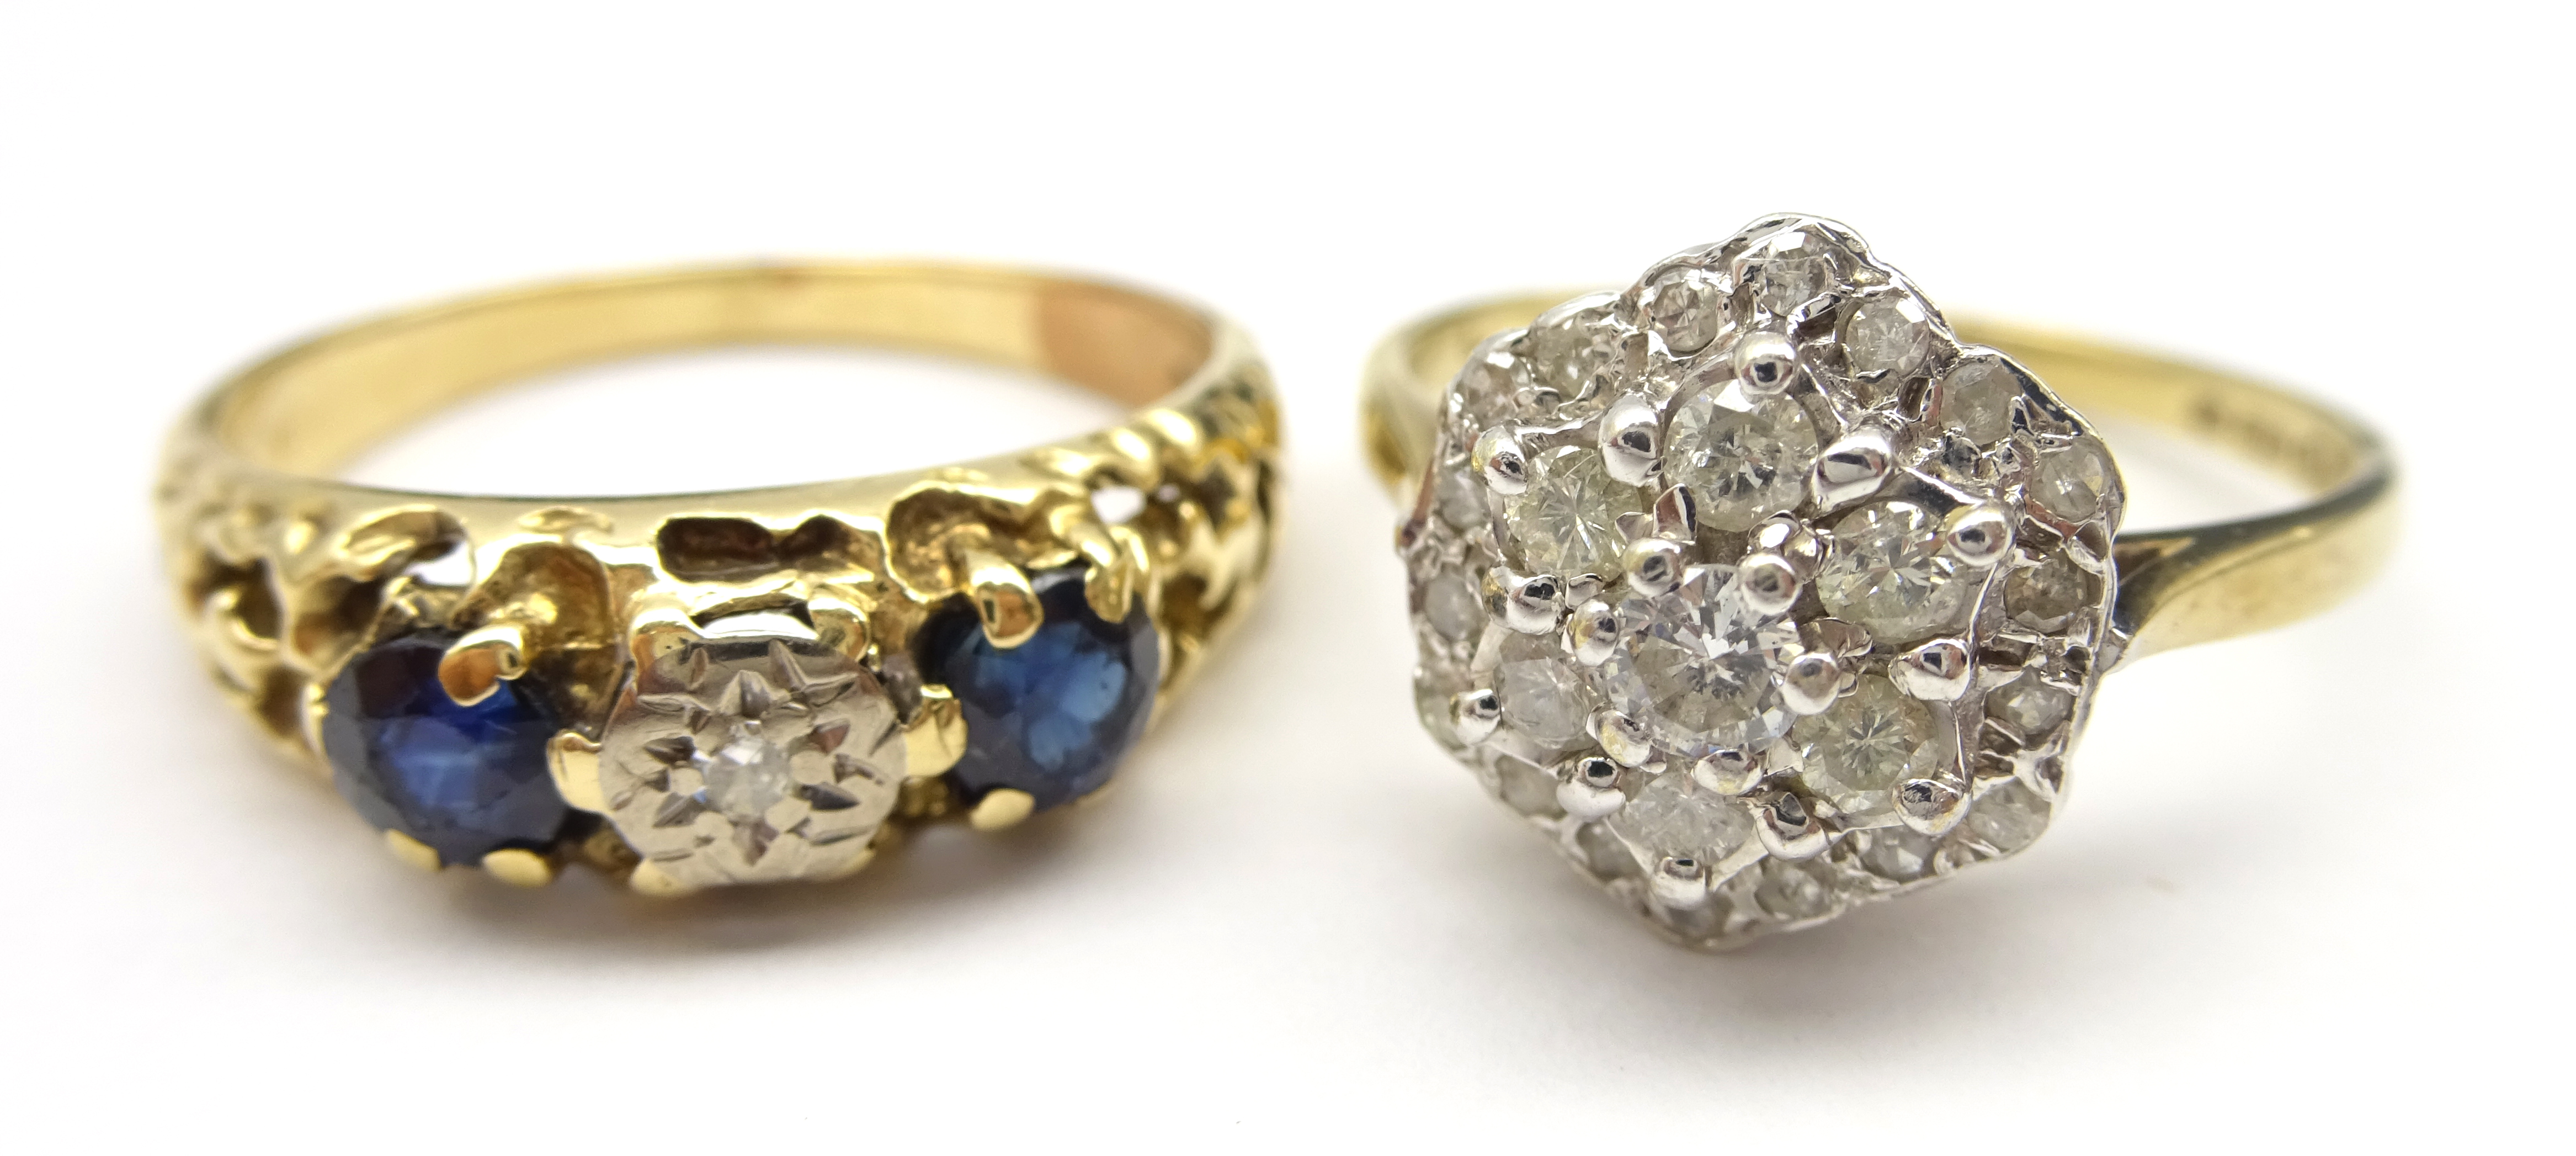 Lot 1058 - 9ct gold diamond cluster ring hallmarked and a 9ct gold (tested) three stone diamond and sapphire